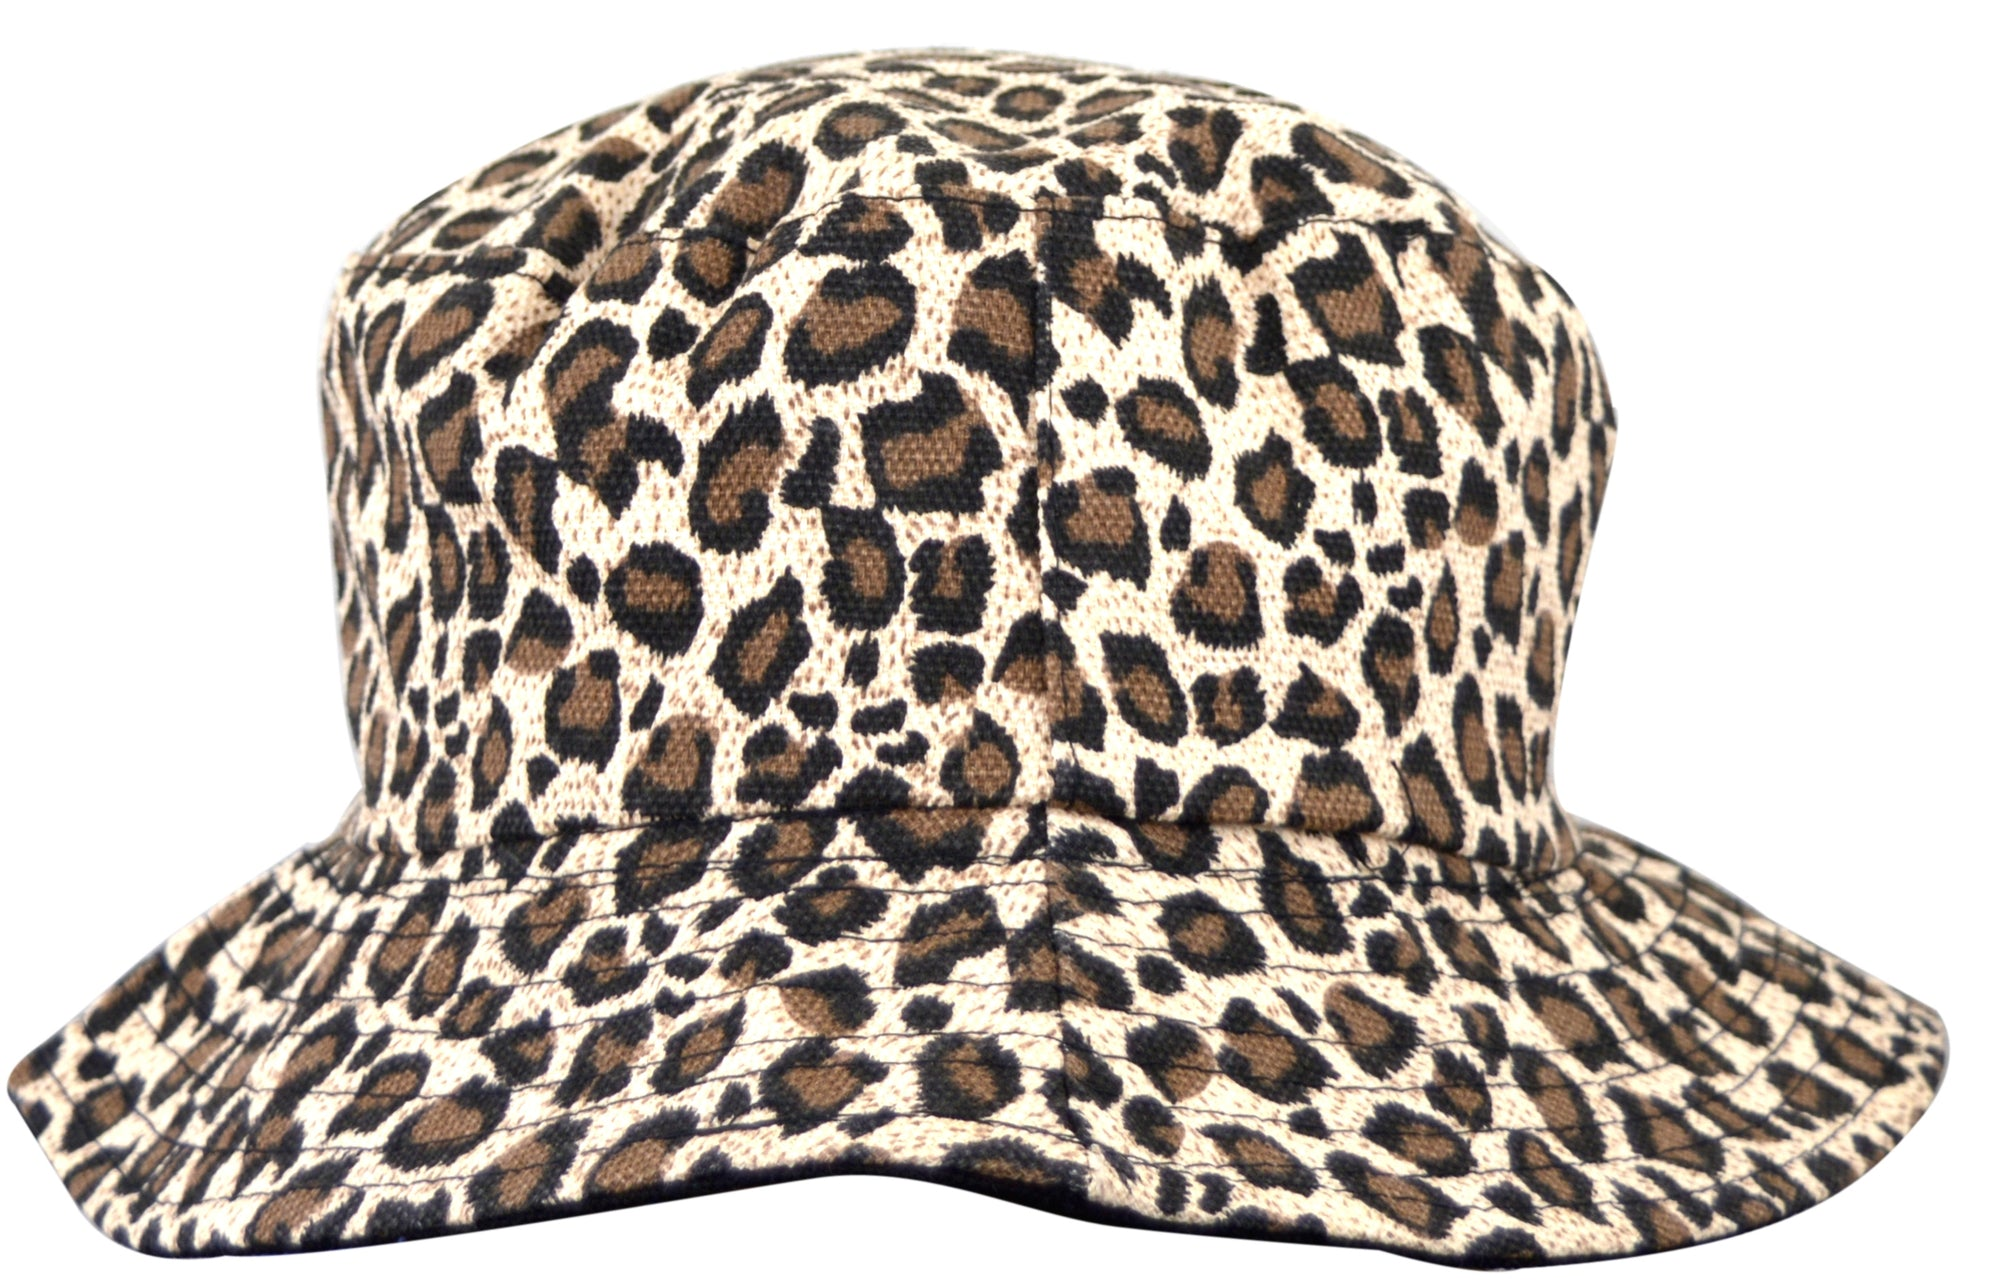 OCTAVE Reversible Bucket Hat - Leopard Print / Black